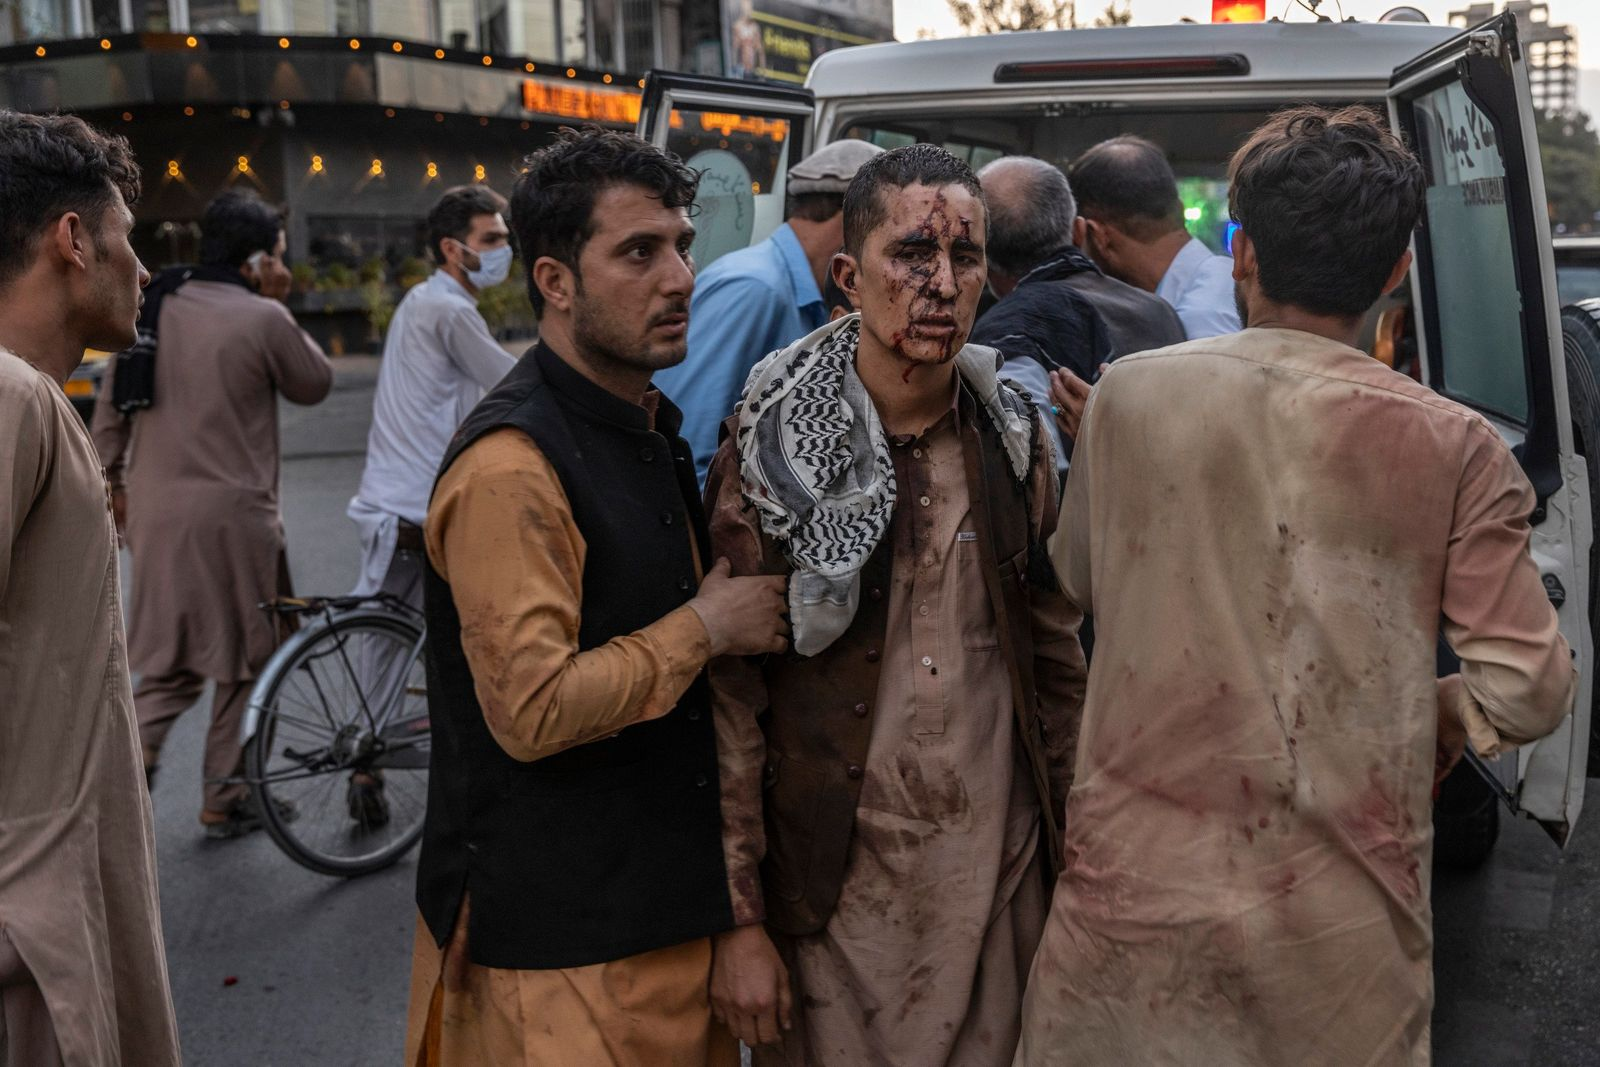 A person wounded in a bomb blast outside the international airport in Kabul, Afghanistan on Thursday, Aug. 26, 2021, arrives at a hospital in Kabul. (Victor J. Blue/The New York Times)